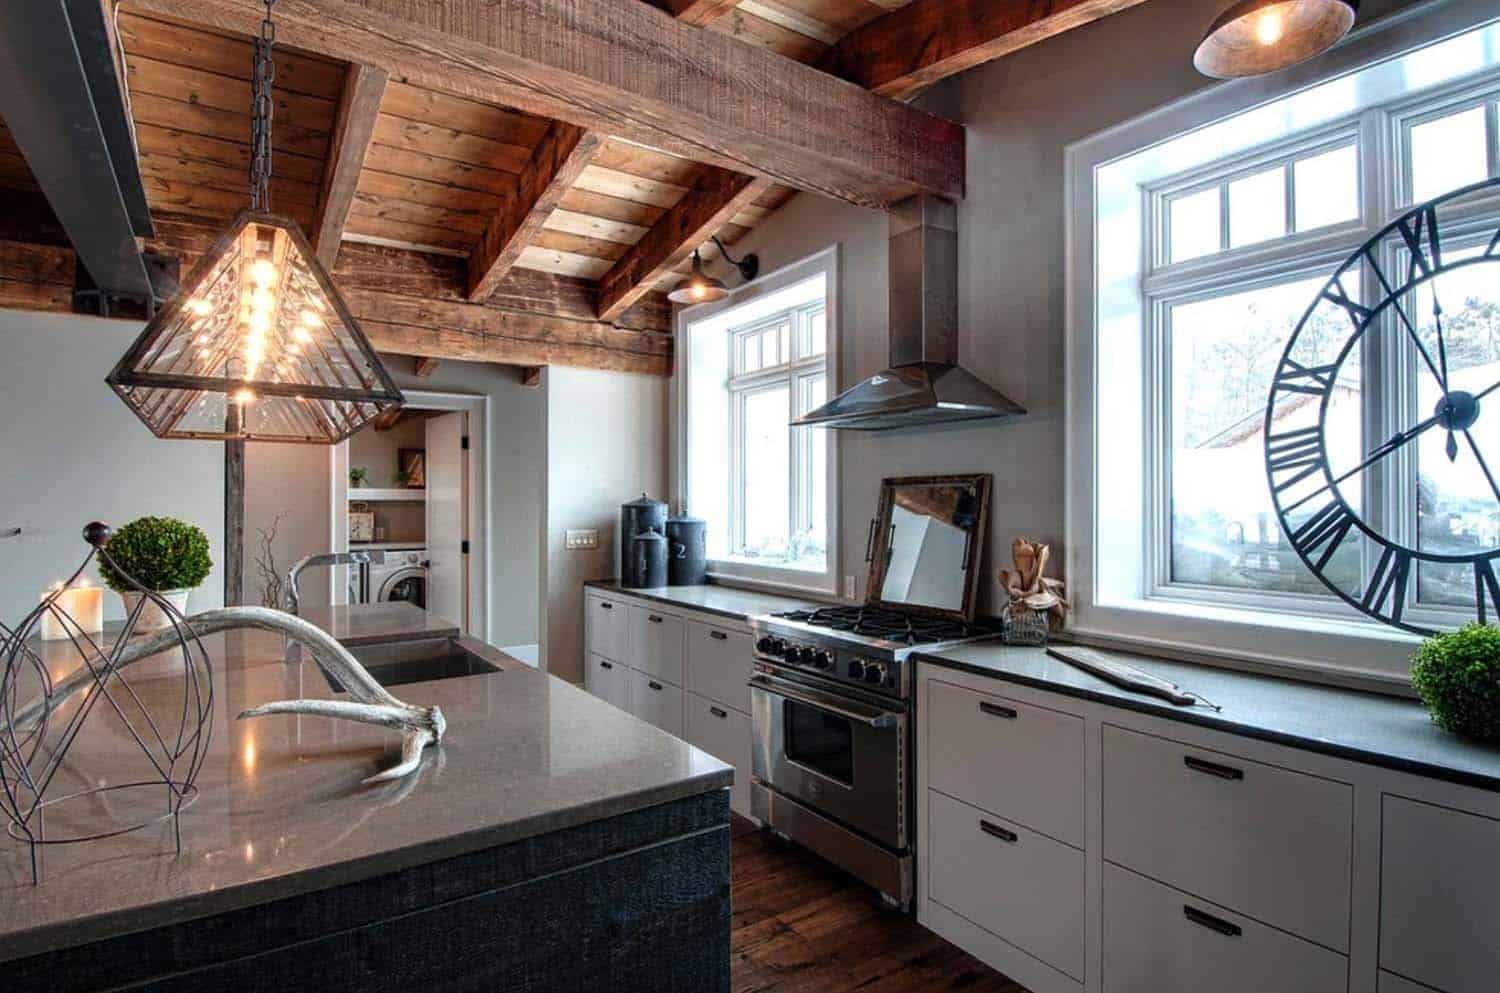 Rustic-Modern-Design-Timberworx Custom Homes-16-1 Kindesign